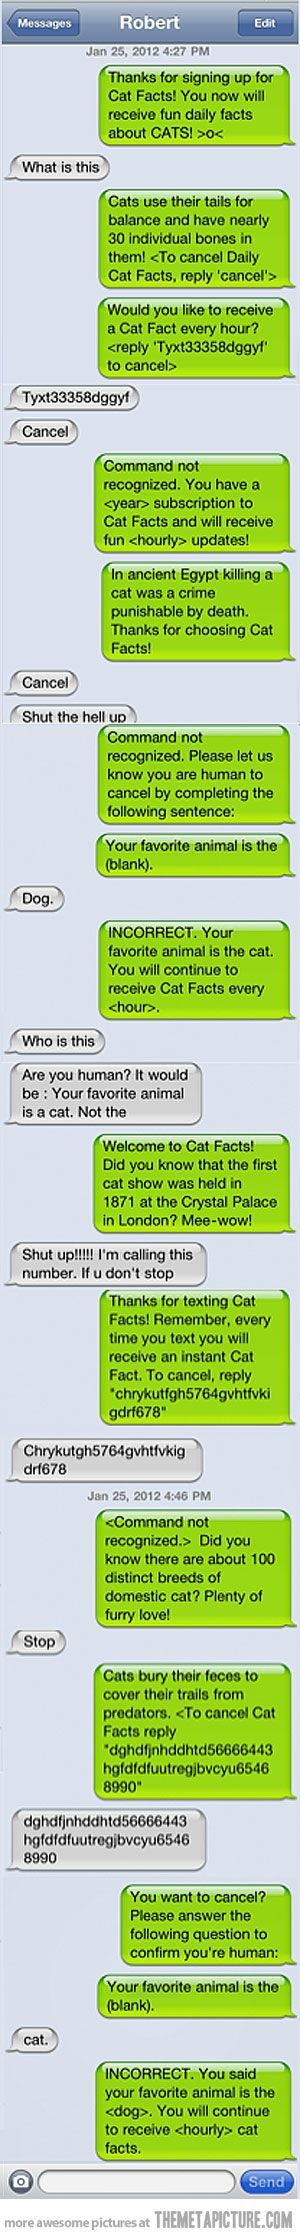 funny text message prank cats... I have a friend I could mess with for HOURS doi...